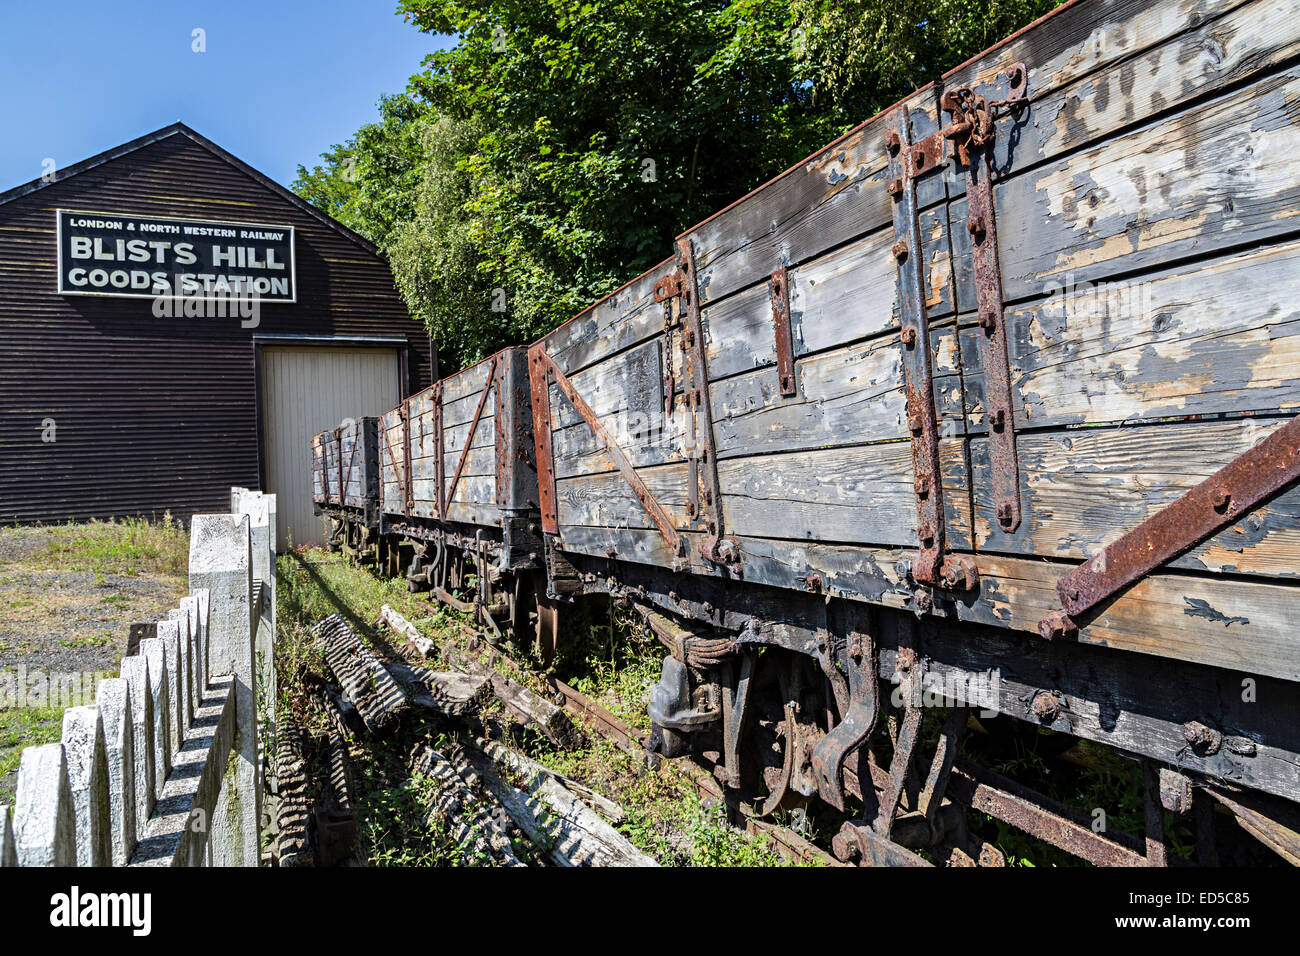 Rusting rolling stock wagons in railway siding, Blists Hill Victorian town, Ironbridge, Shropshire, England, UK - Stock Image